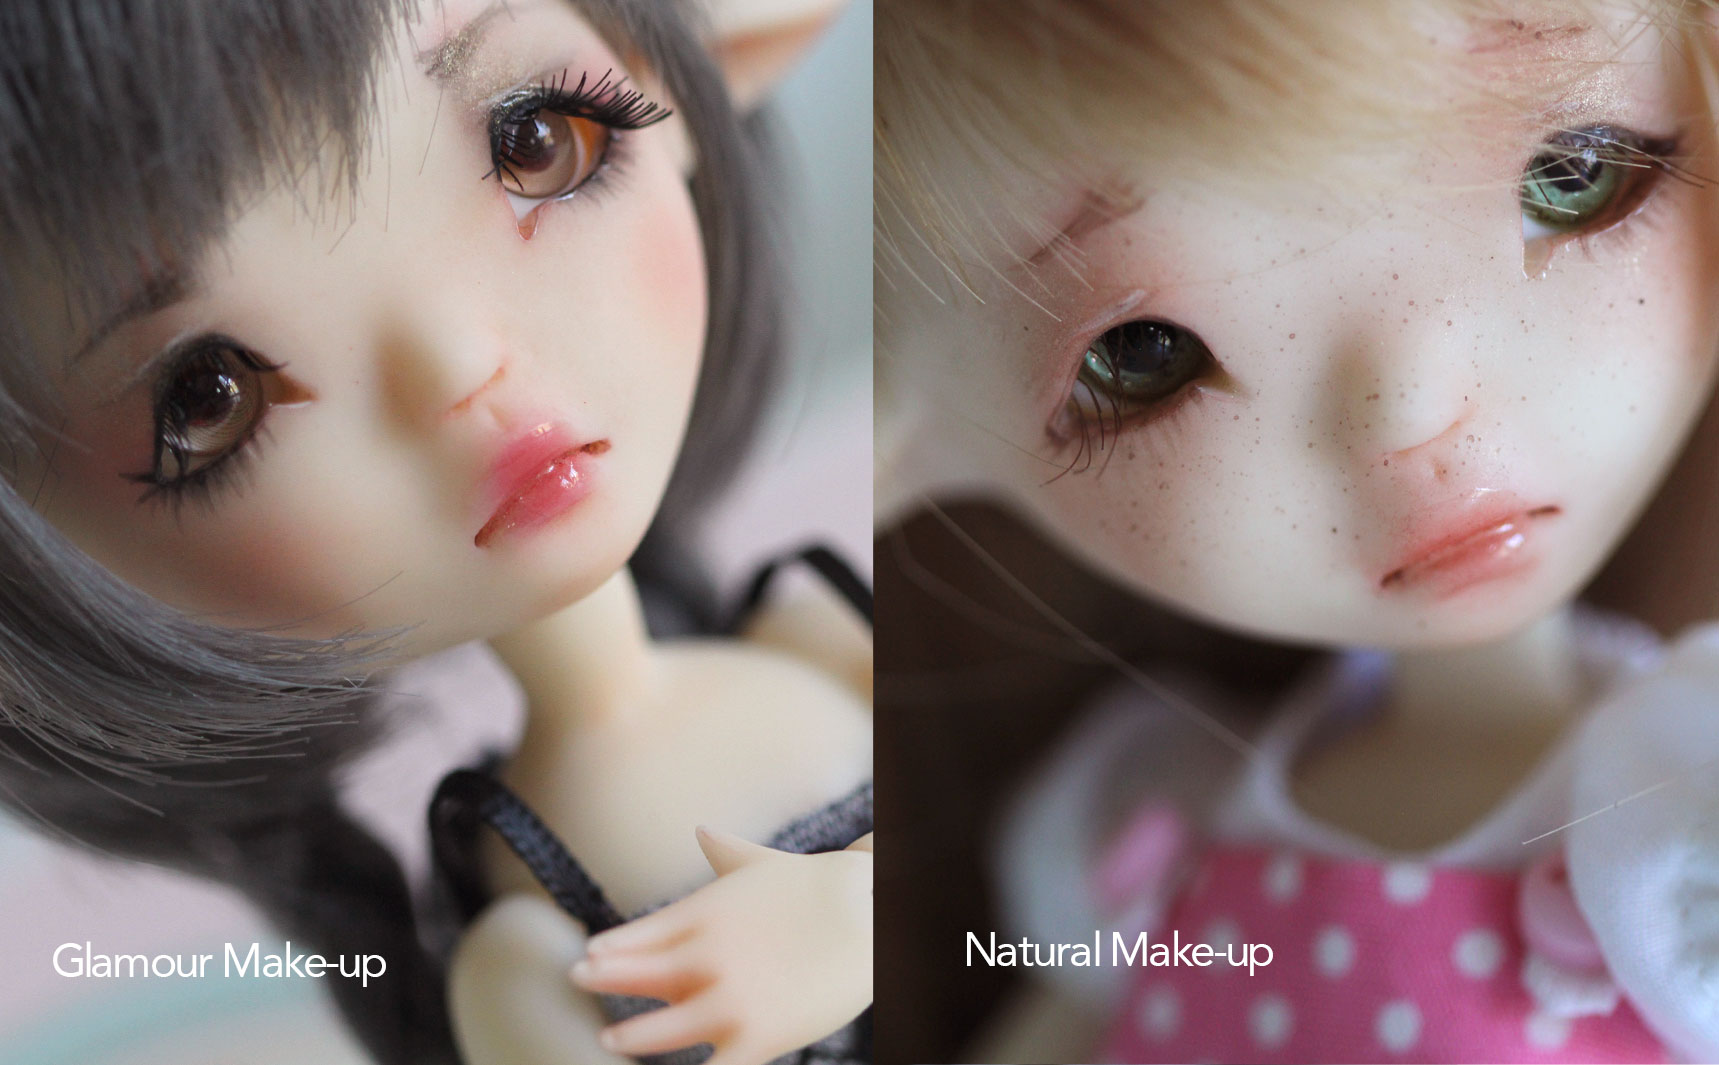 malicie-cream-nympheas-dolls-045